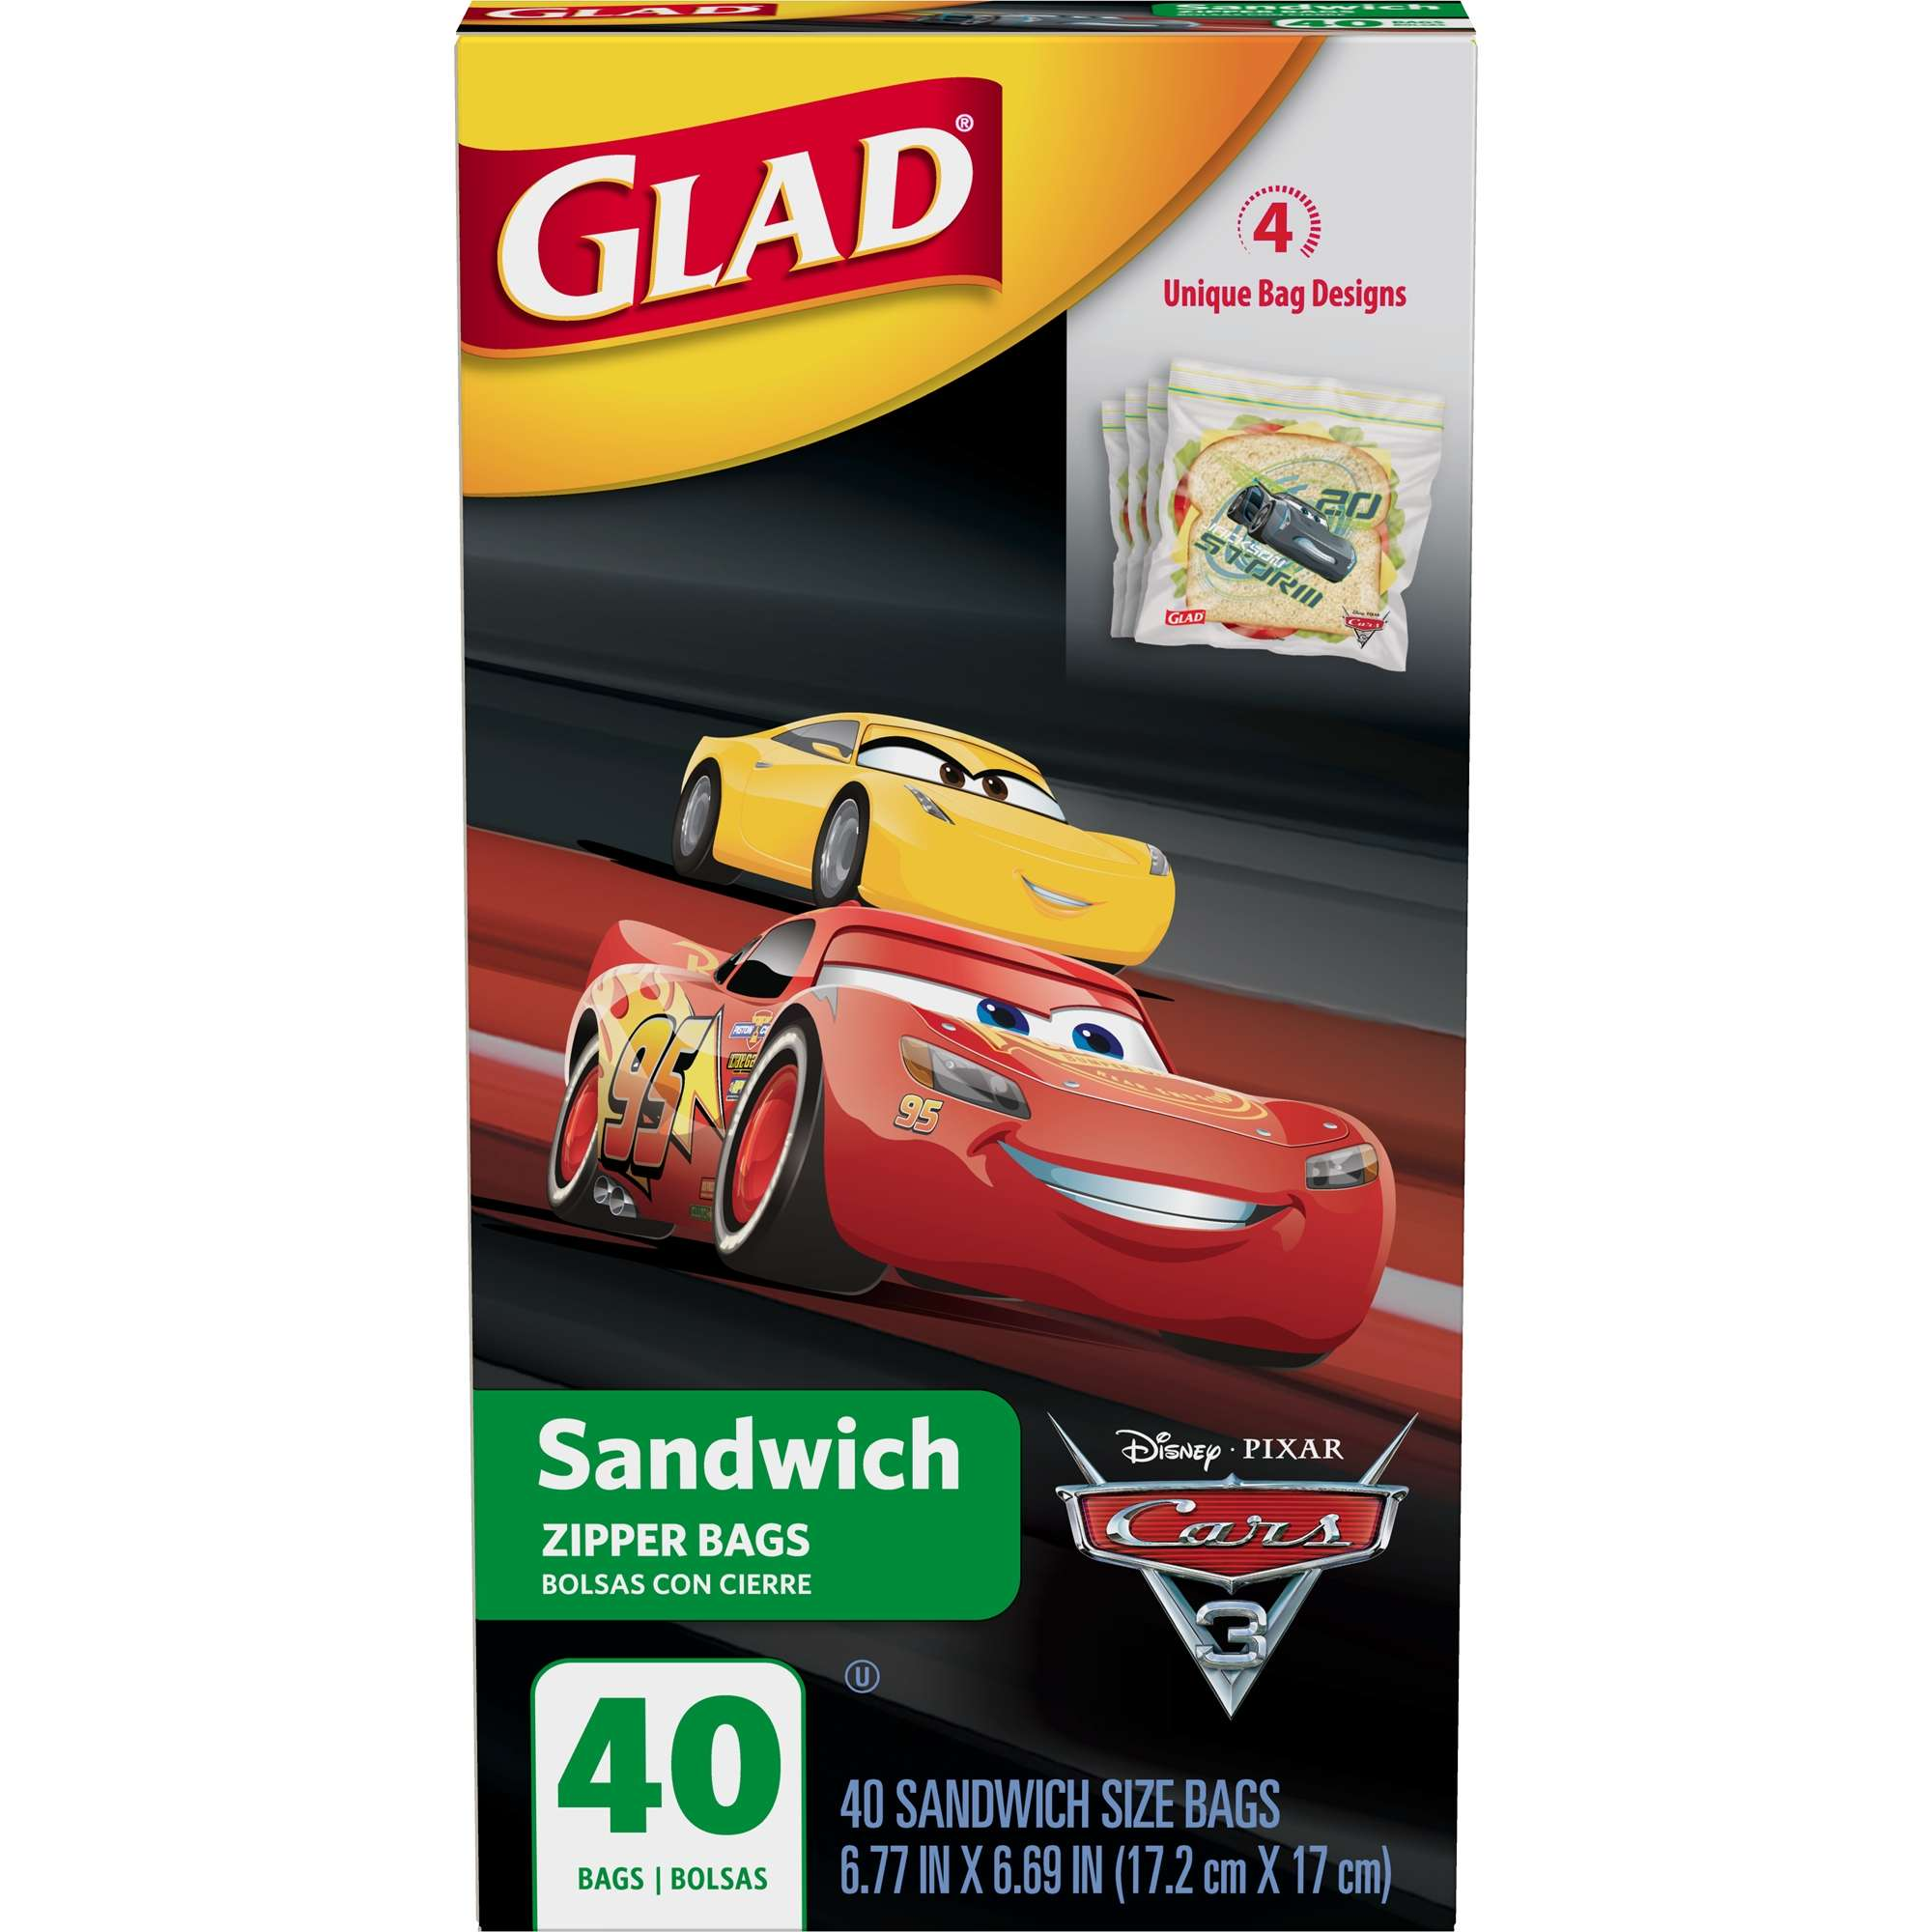 Glad Zipper Food Storage Sandwich Bags, Disney-Pixar Cars, 40 ct